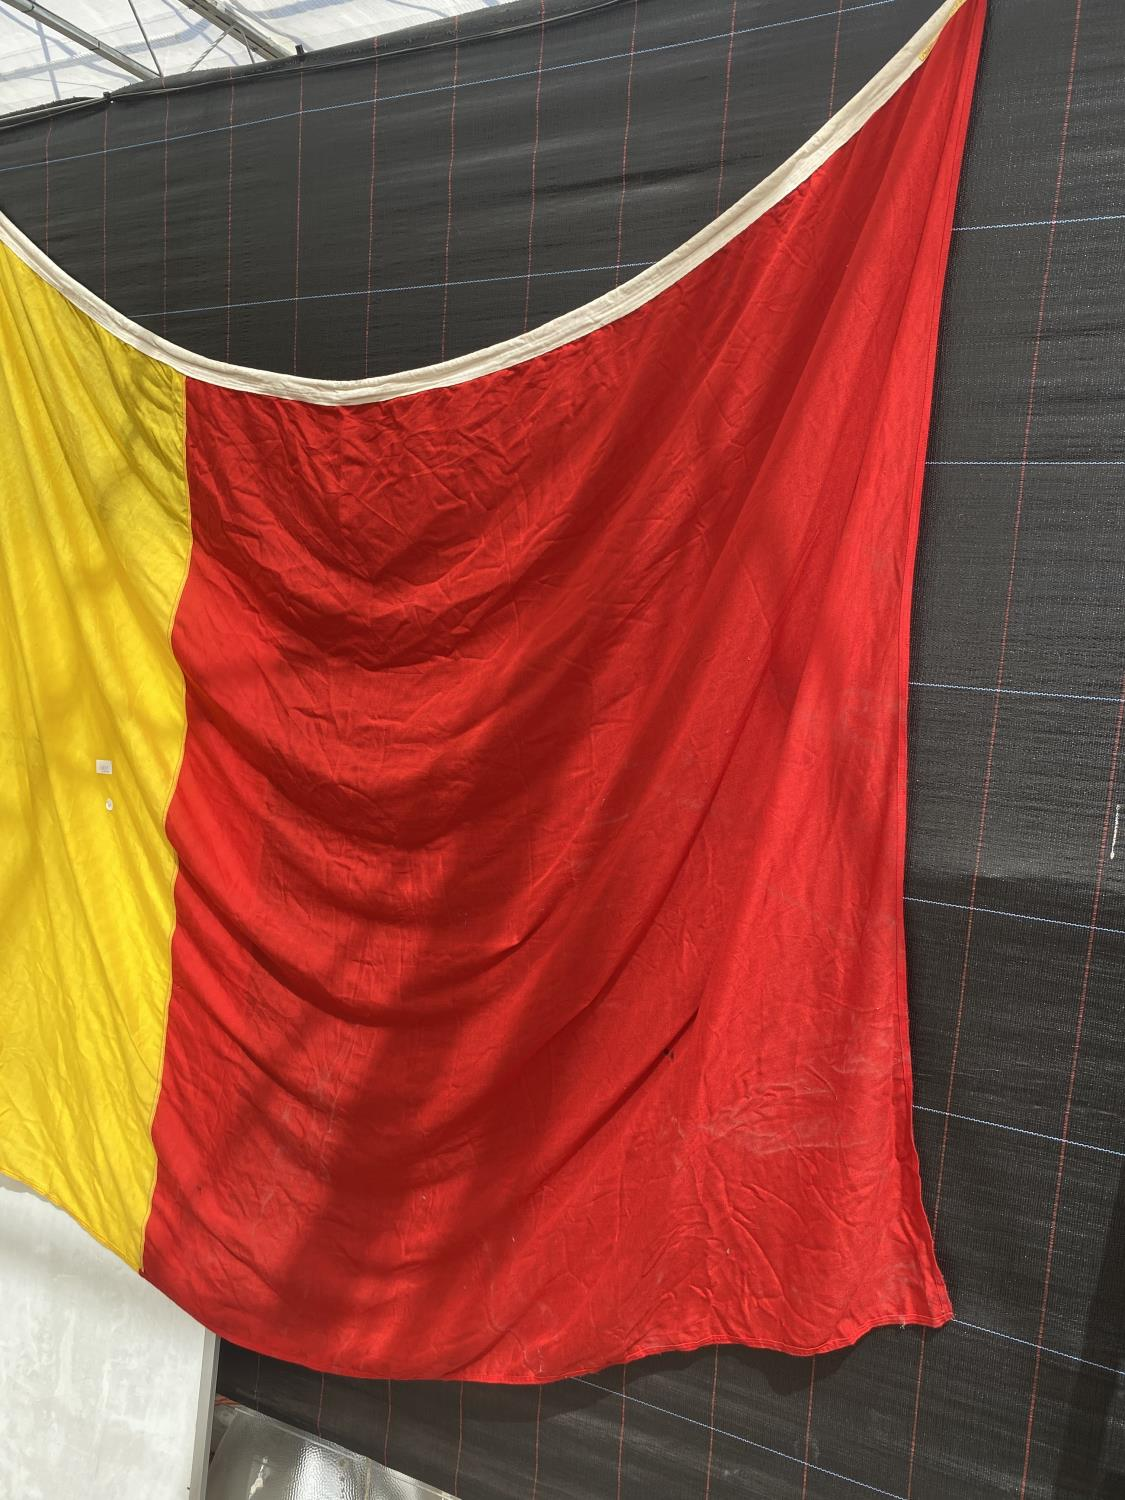 AN EXTREMELY LARGE BELGIUM FLAG - Image 2 of 4